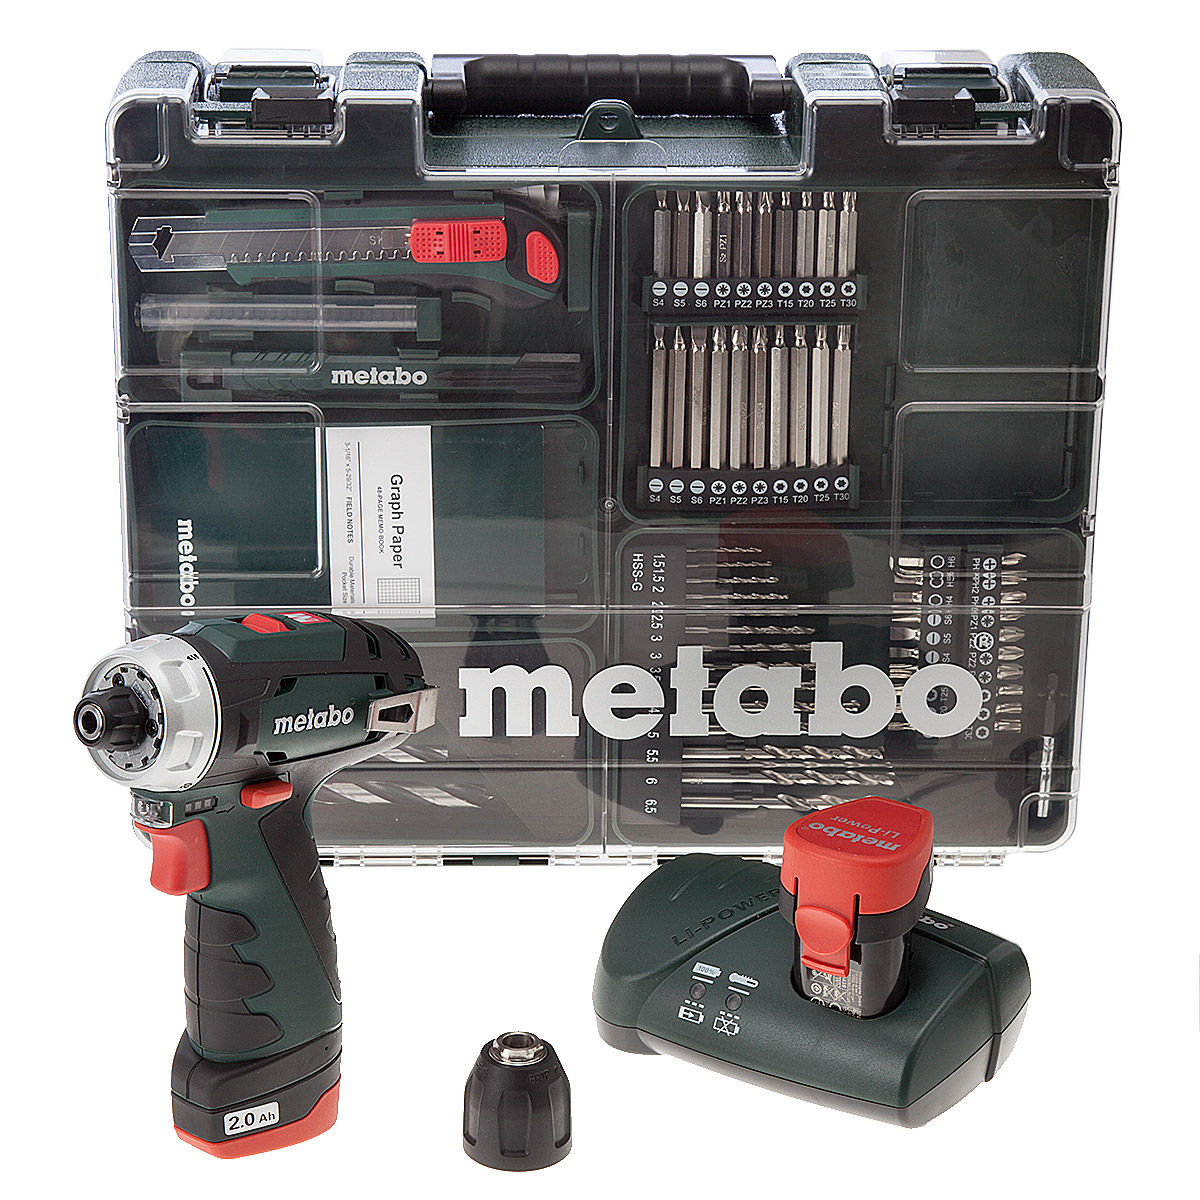 Tools & Electrical Tools Metabo PowerMaxx BS Basic Drill Driver (2 x 2.0Ah Batteries) with 62 Piece Mobile Workshop